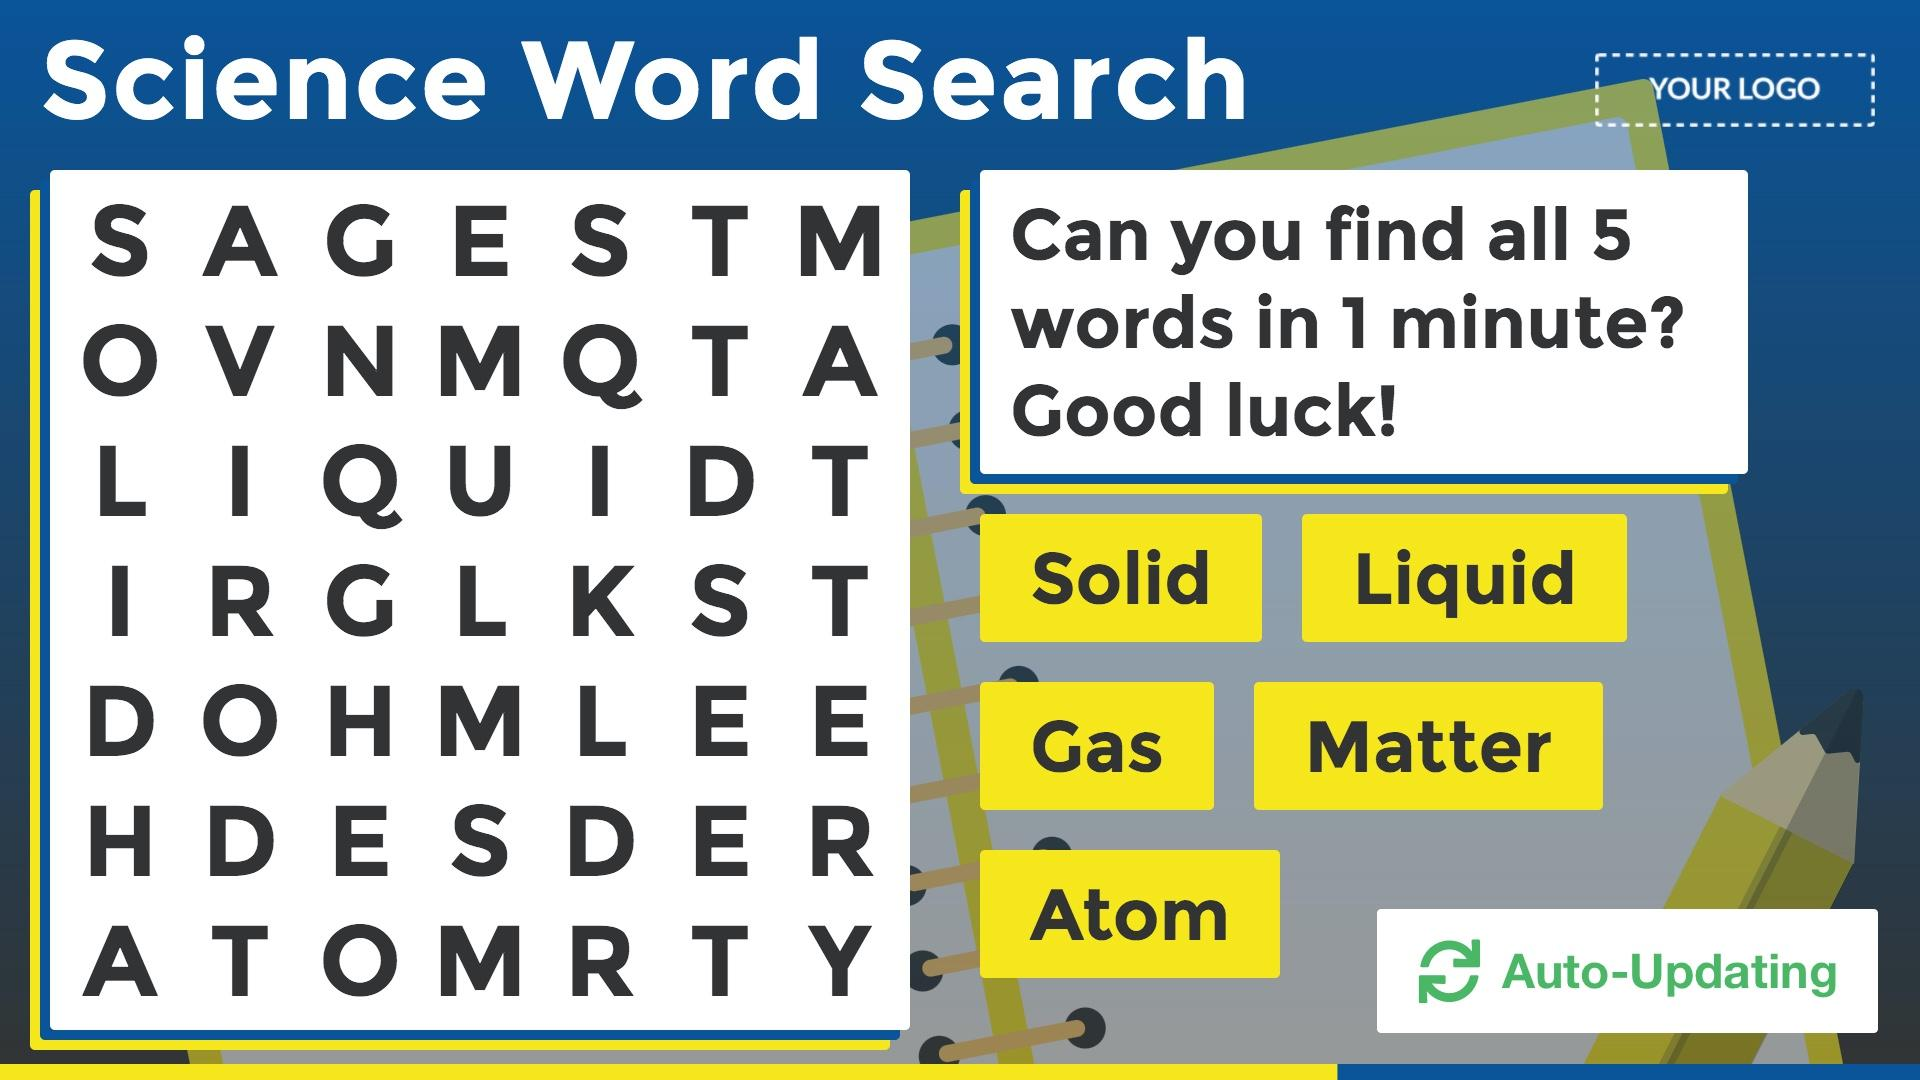 Auto Update Word Search Digital Signage Template